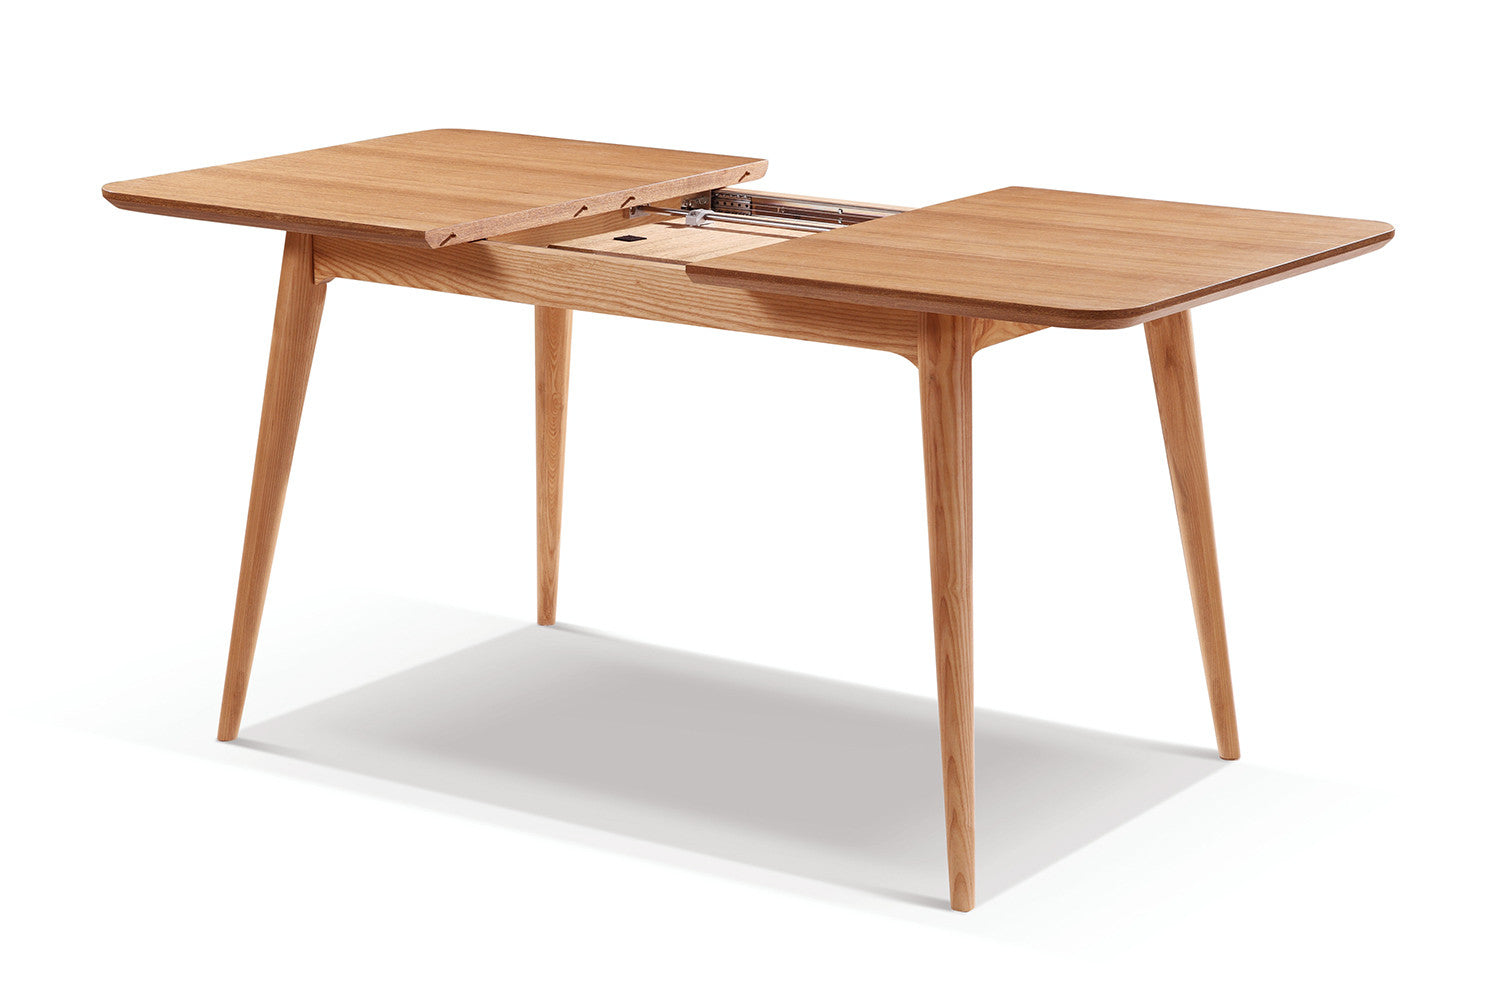 Table de salle manger extensible en bois adda dewarens for Table de cuisine rectangulaire extensible